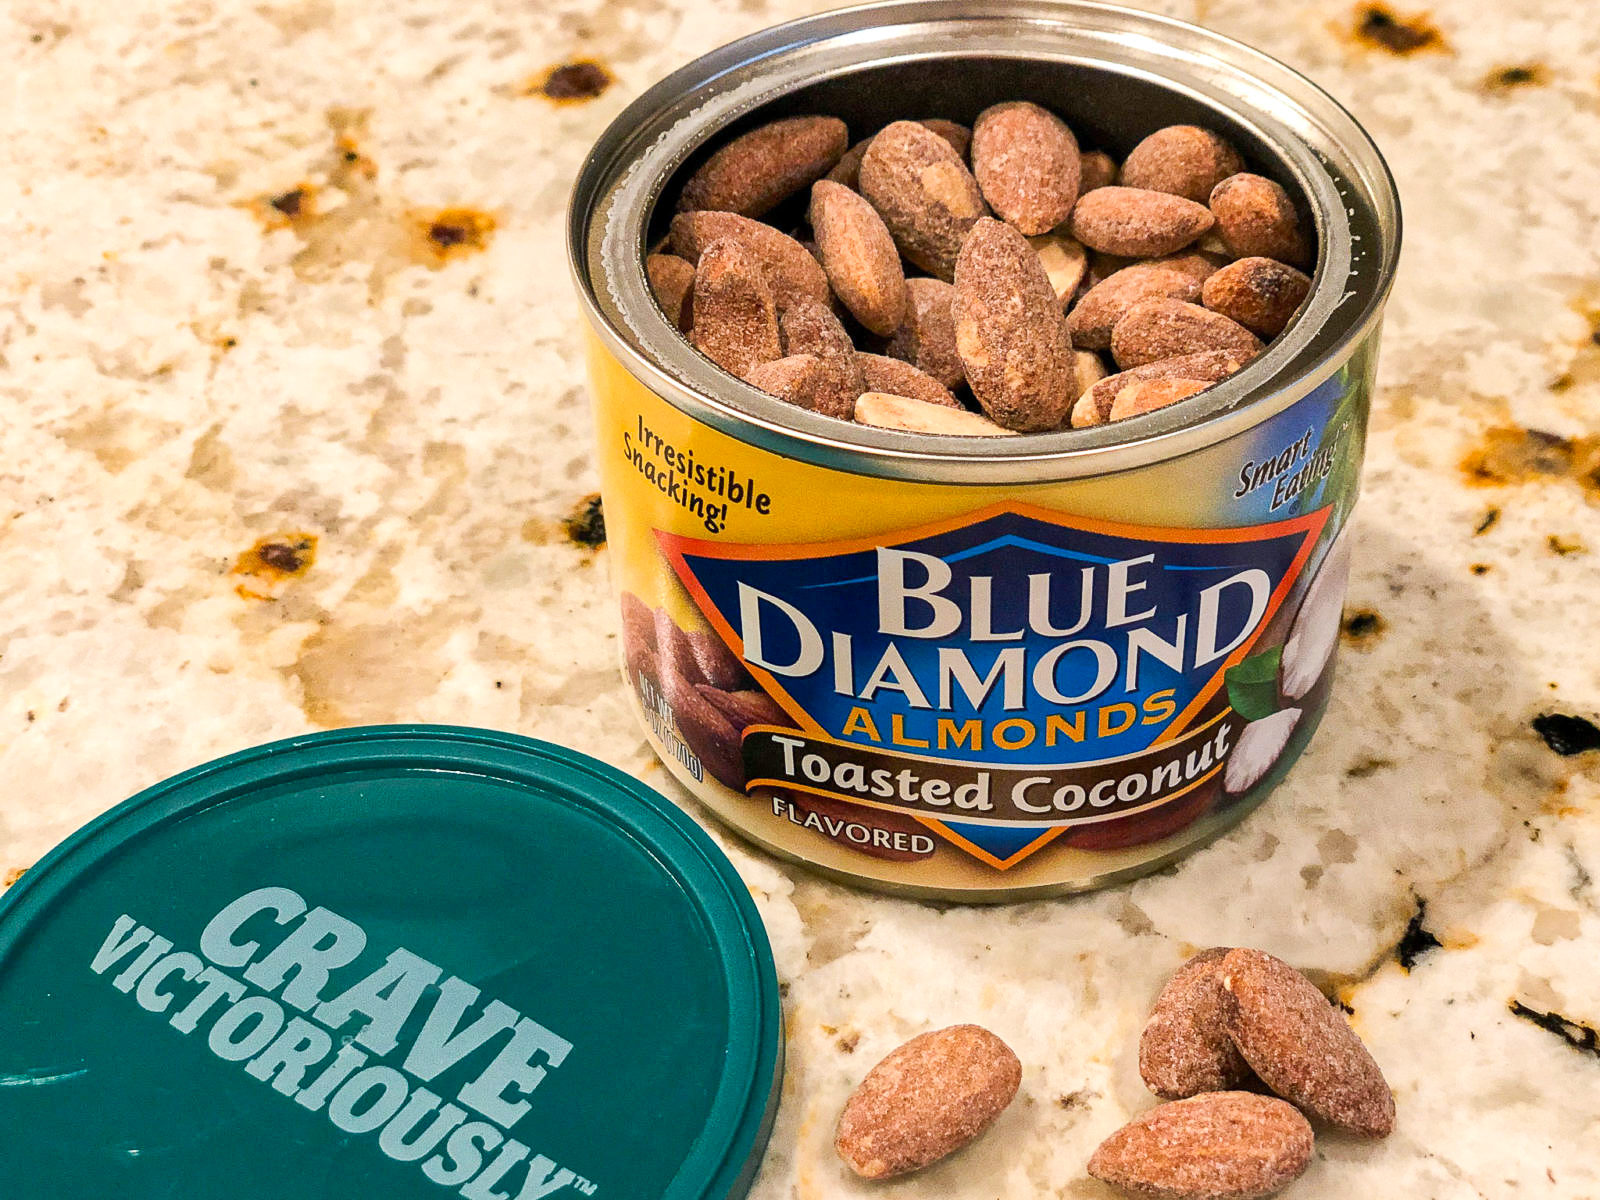 Blue Diamond Almonds Less Than Half Price - Just $1.15 Per Can At Publix on I Heart Publix